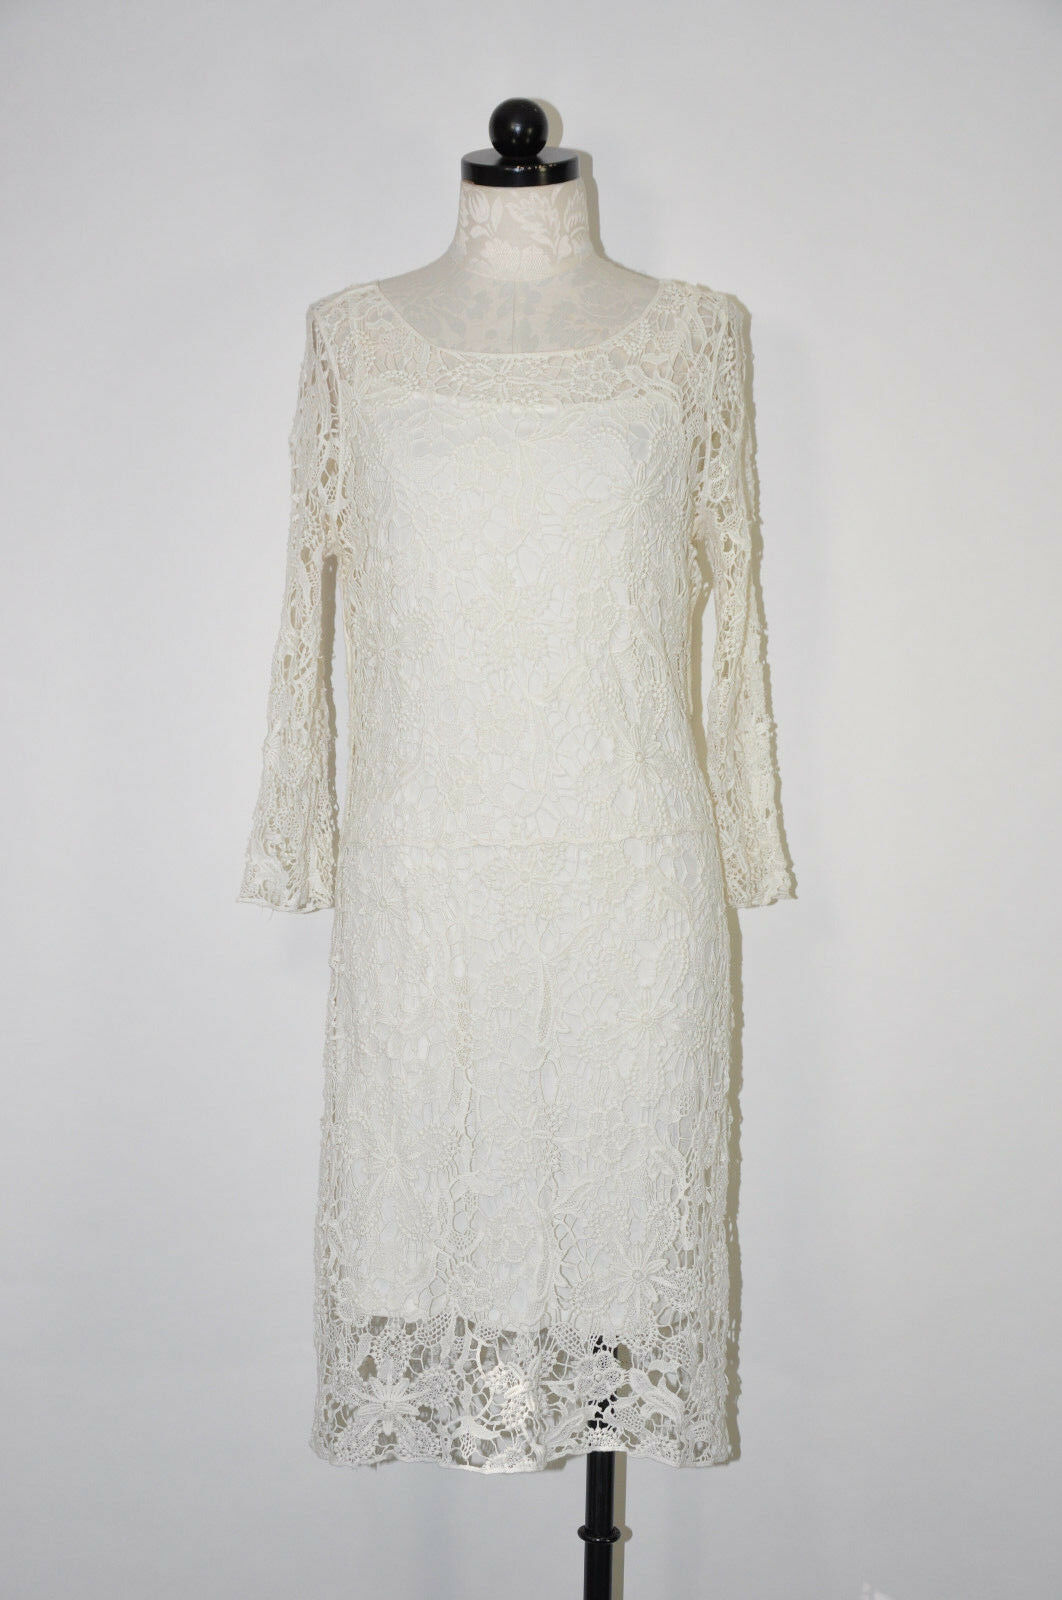 LAUREN RALPH LAUREN White Cotton Guipure Lace Embroidery Sheer Sheath Dress L